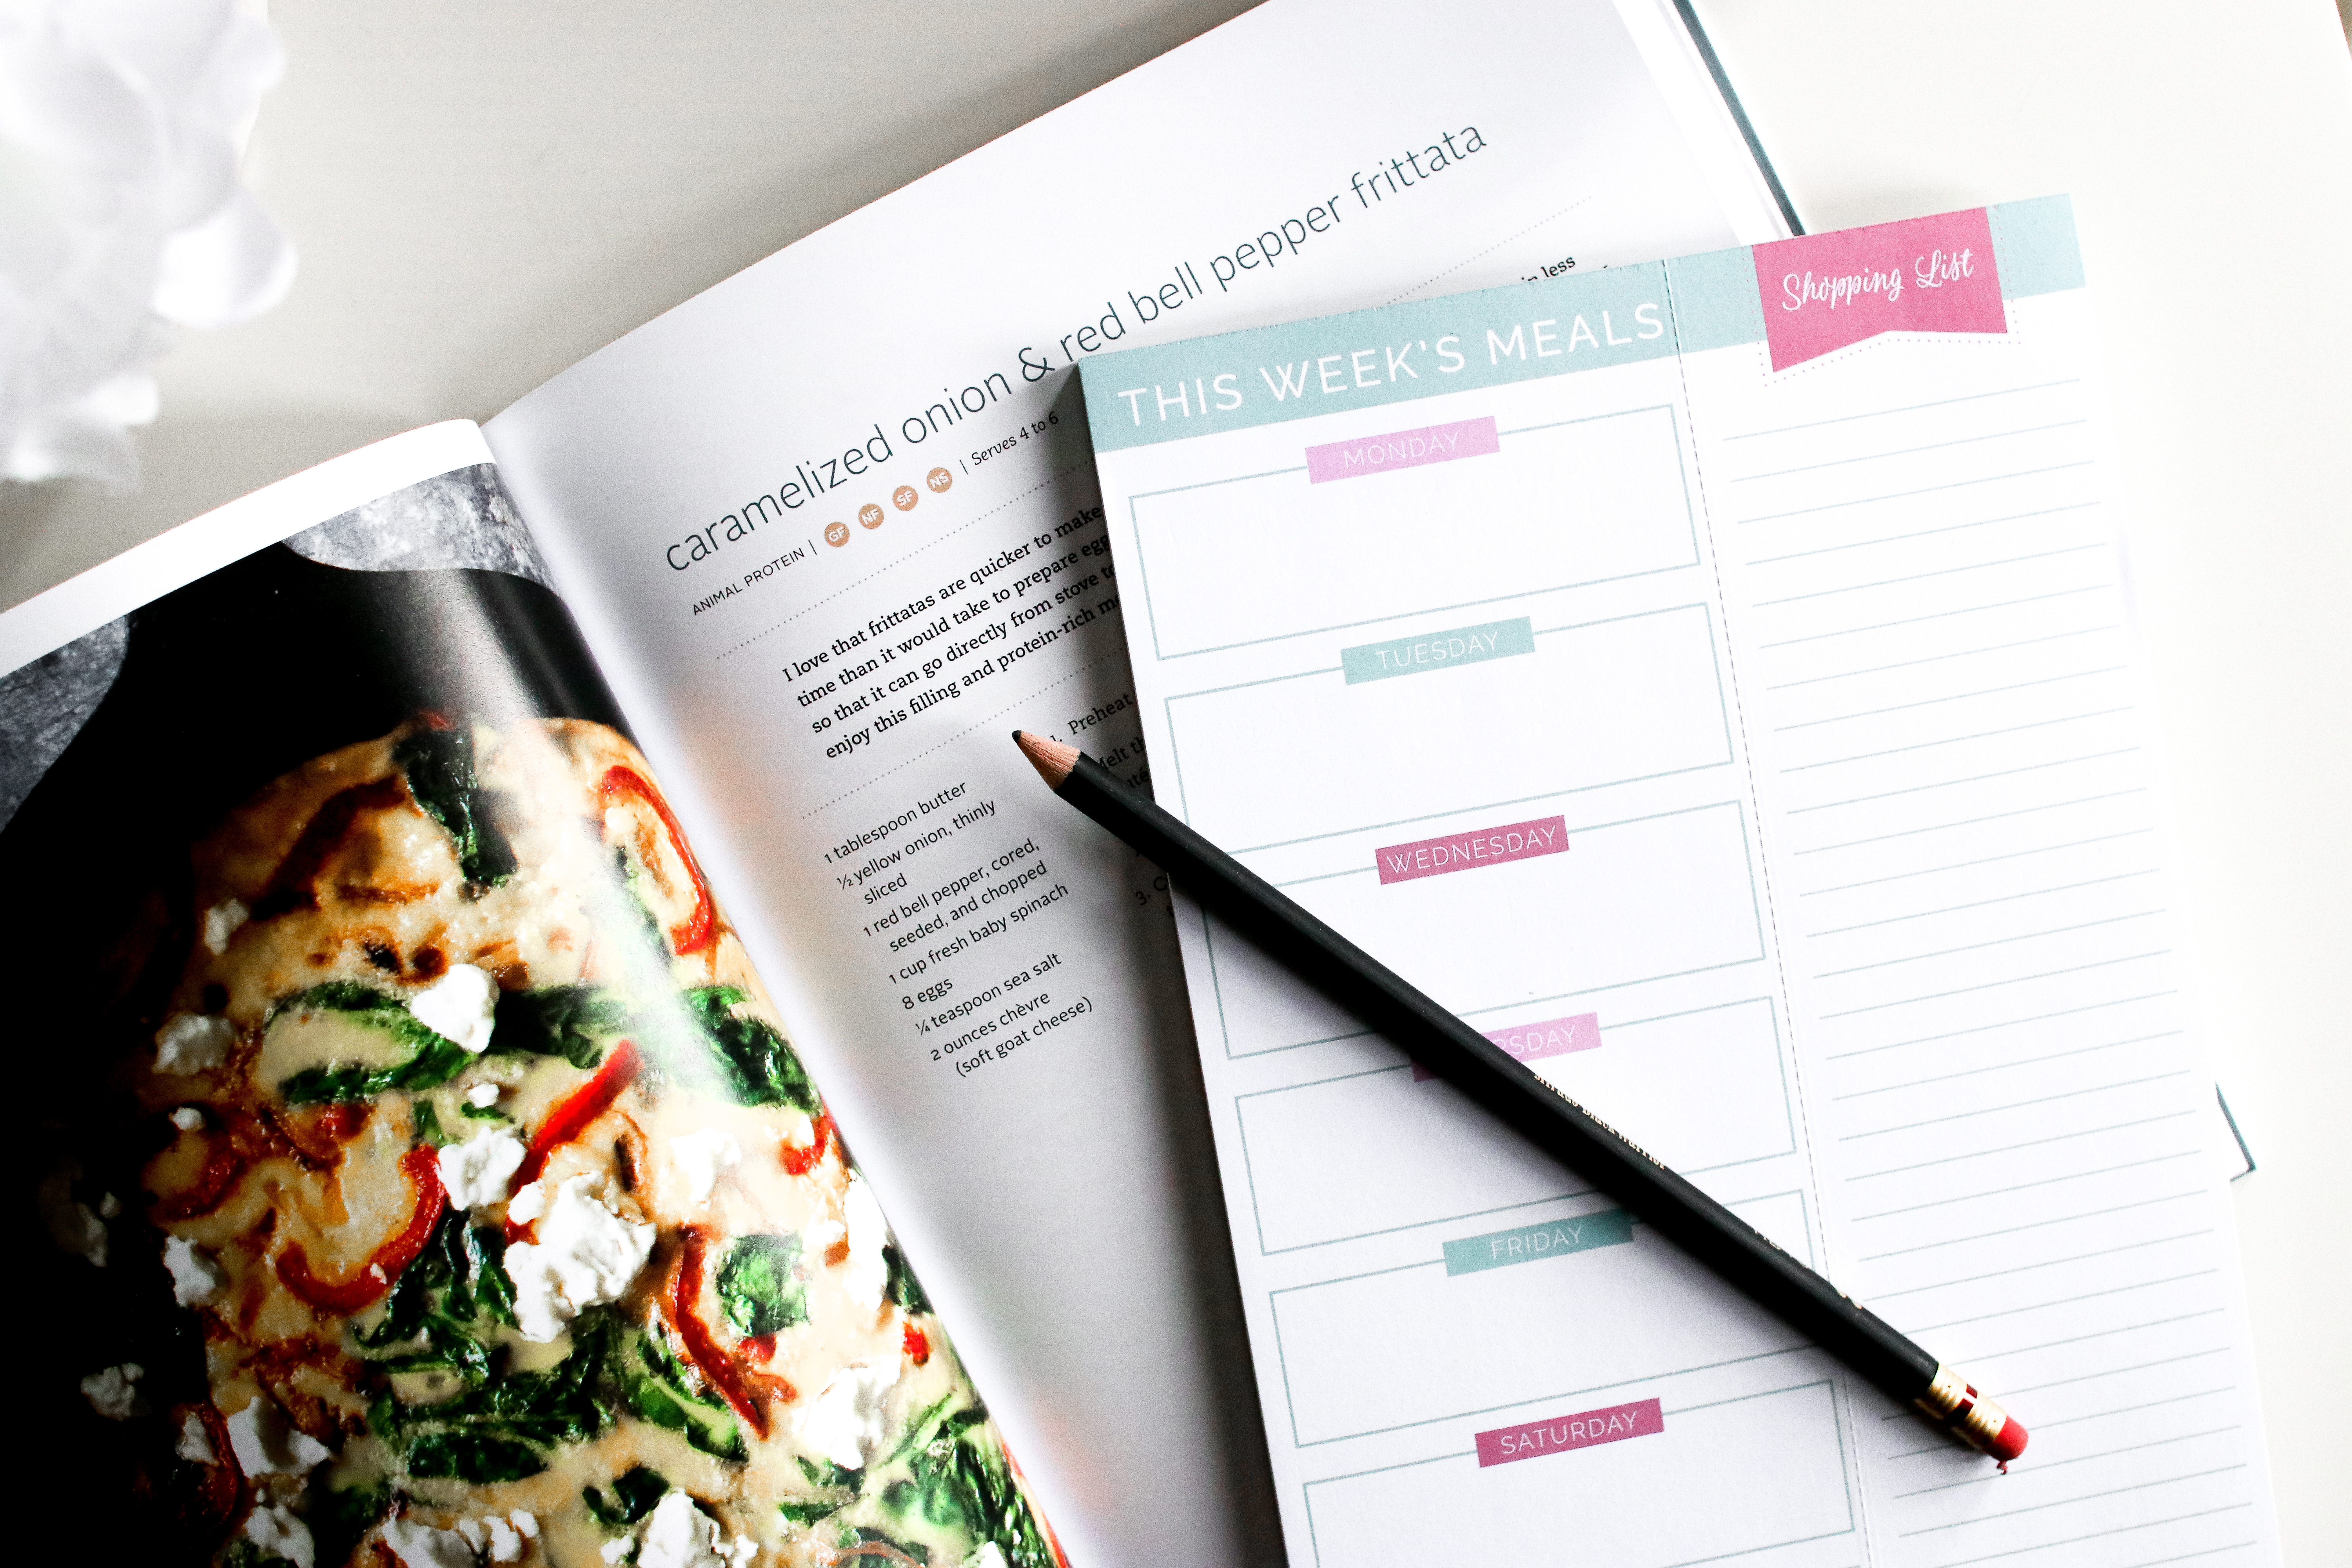 5 Healthy Cookbooks to Try | The Beauty Vanity